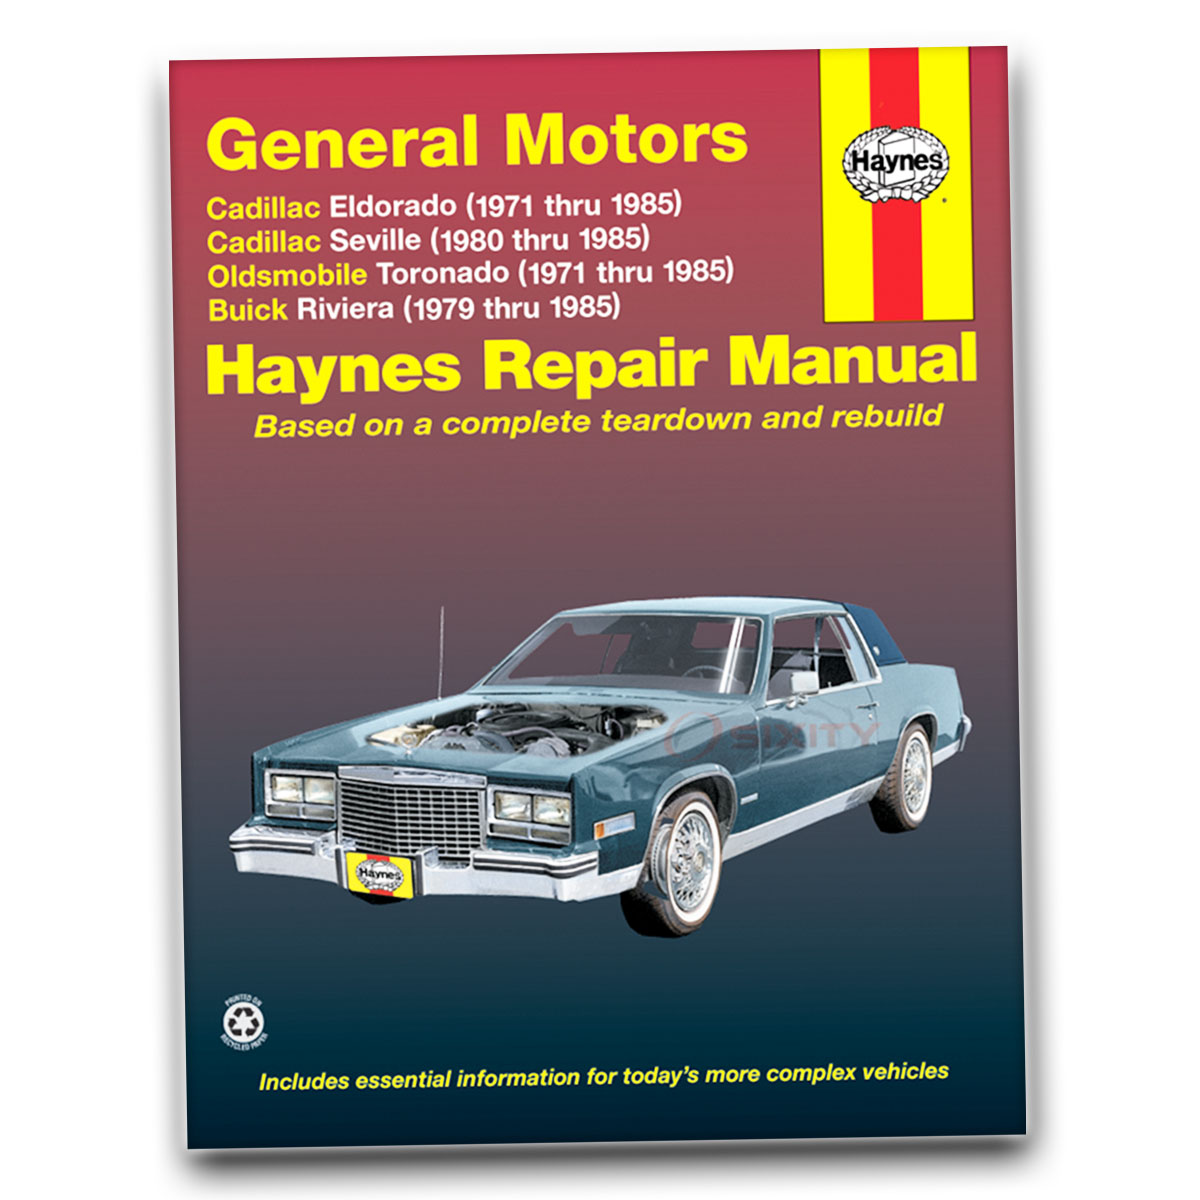 Haynes Repair Manual For 1971-1985 Cadillac Eldorado